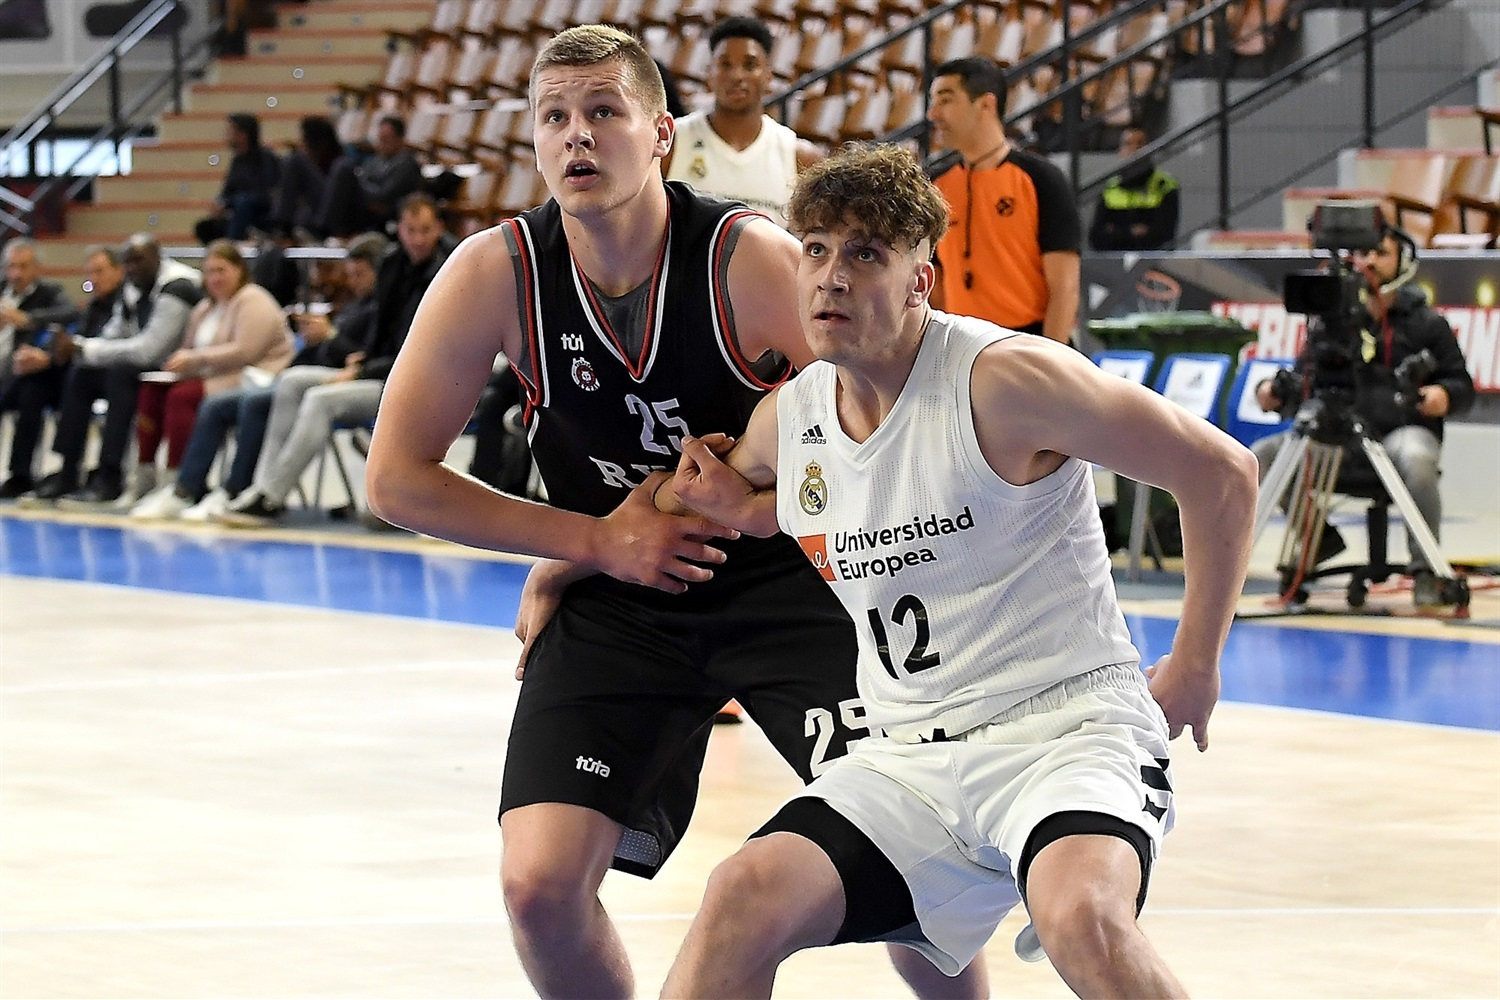 Ruben Lopez - U18 Real Madrid - ANGT Final Four Vitoria-Gasteiz 2019 - JT18